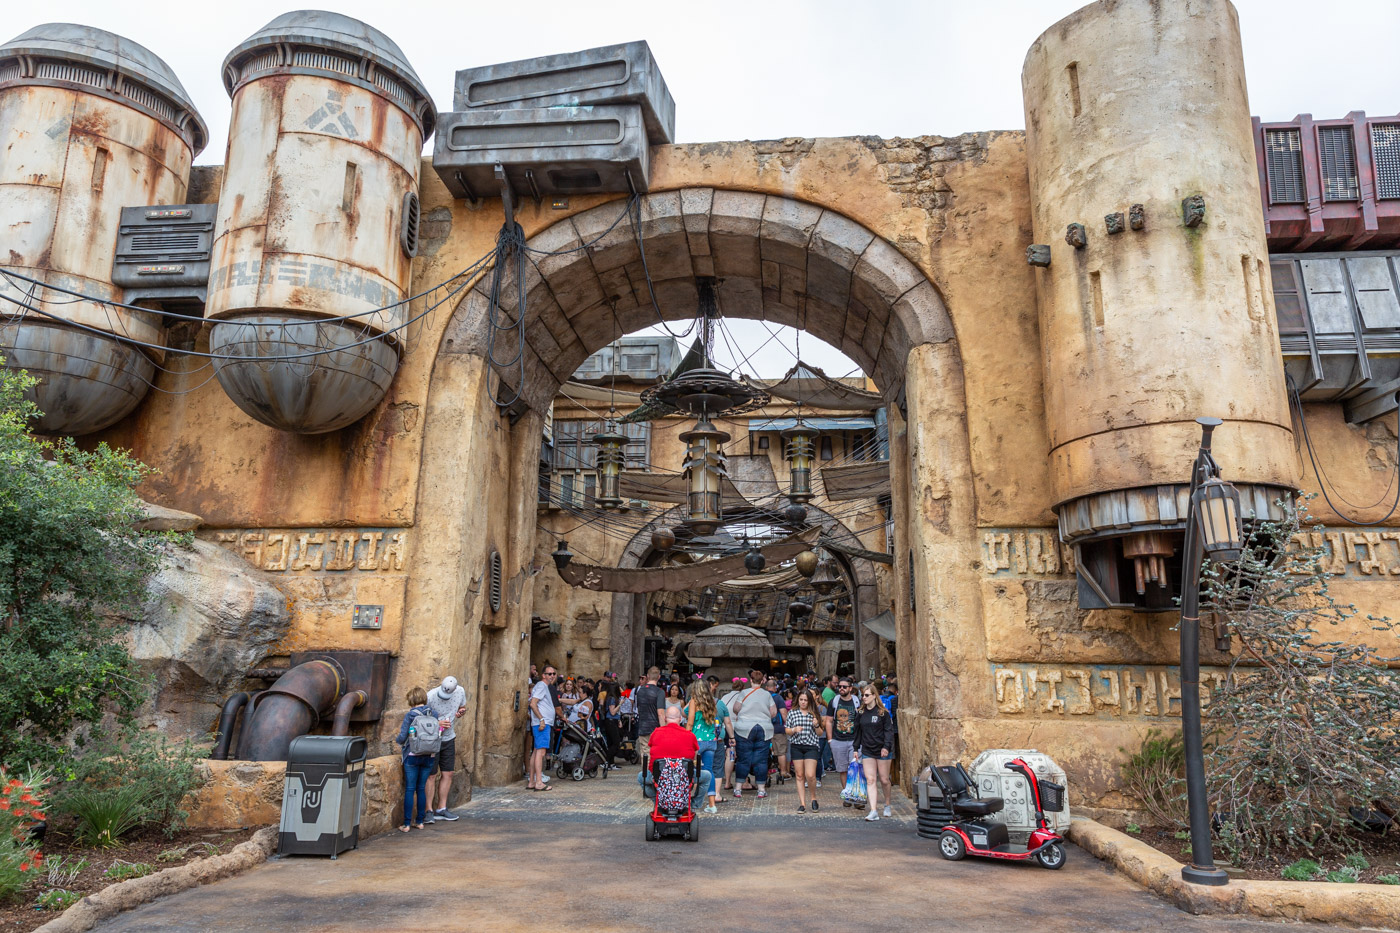 The Market in Batuu inside Star Wars Land at Disneyland. Galaxy's Edge at Disneyland